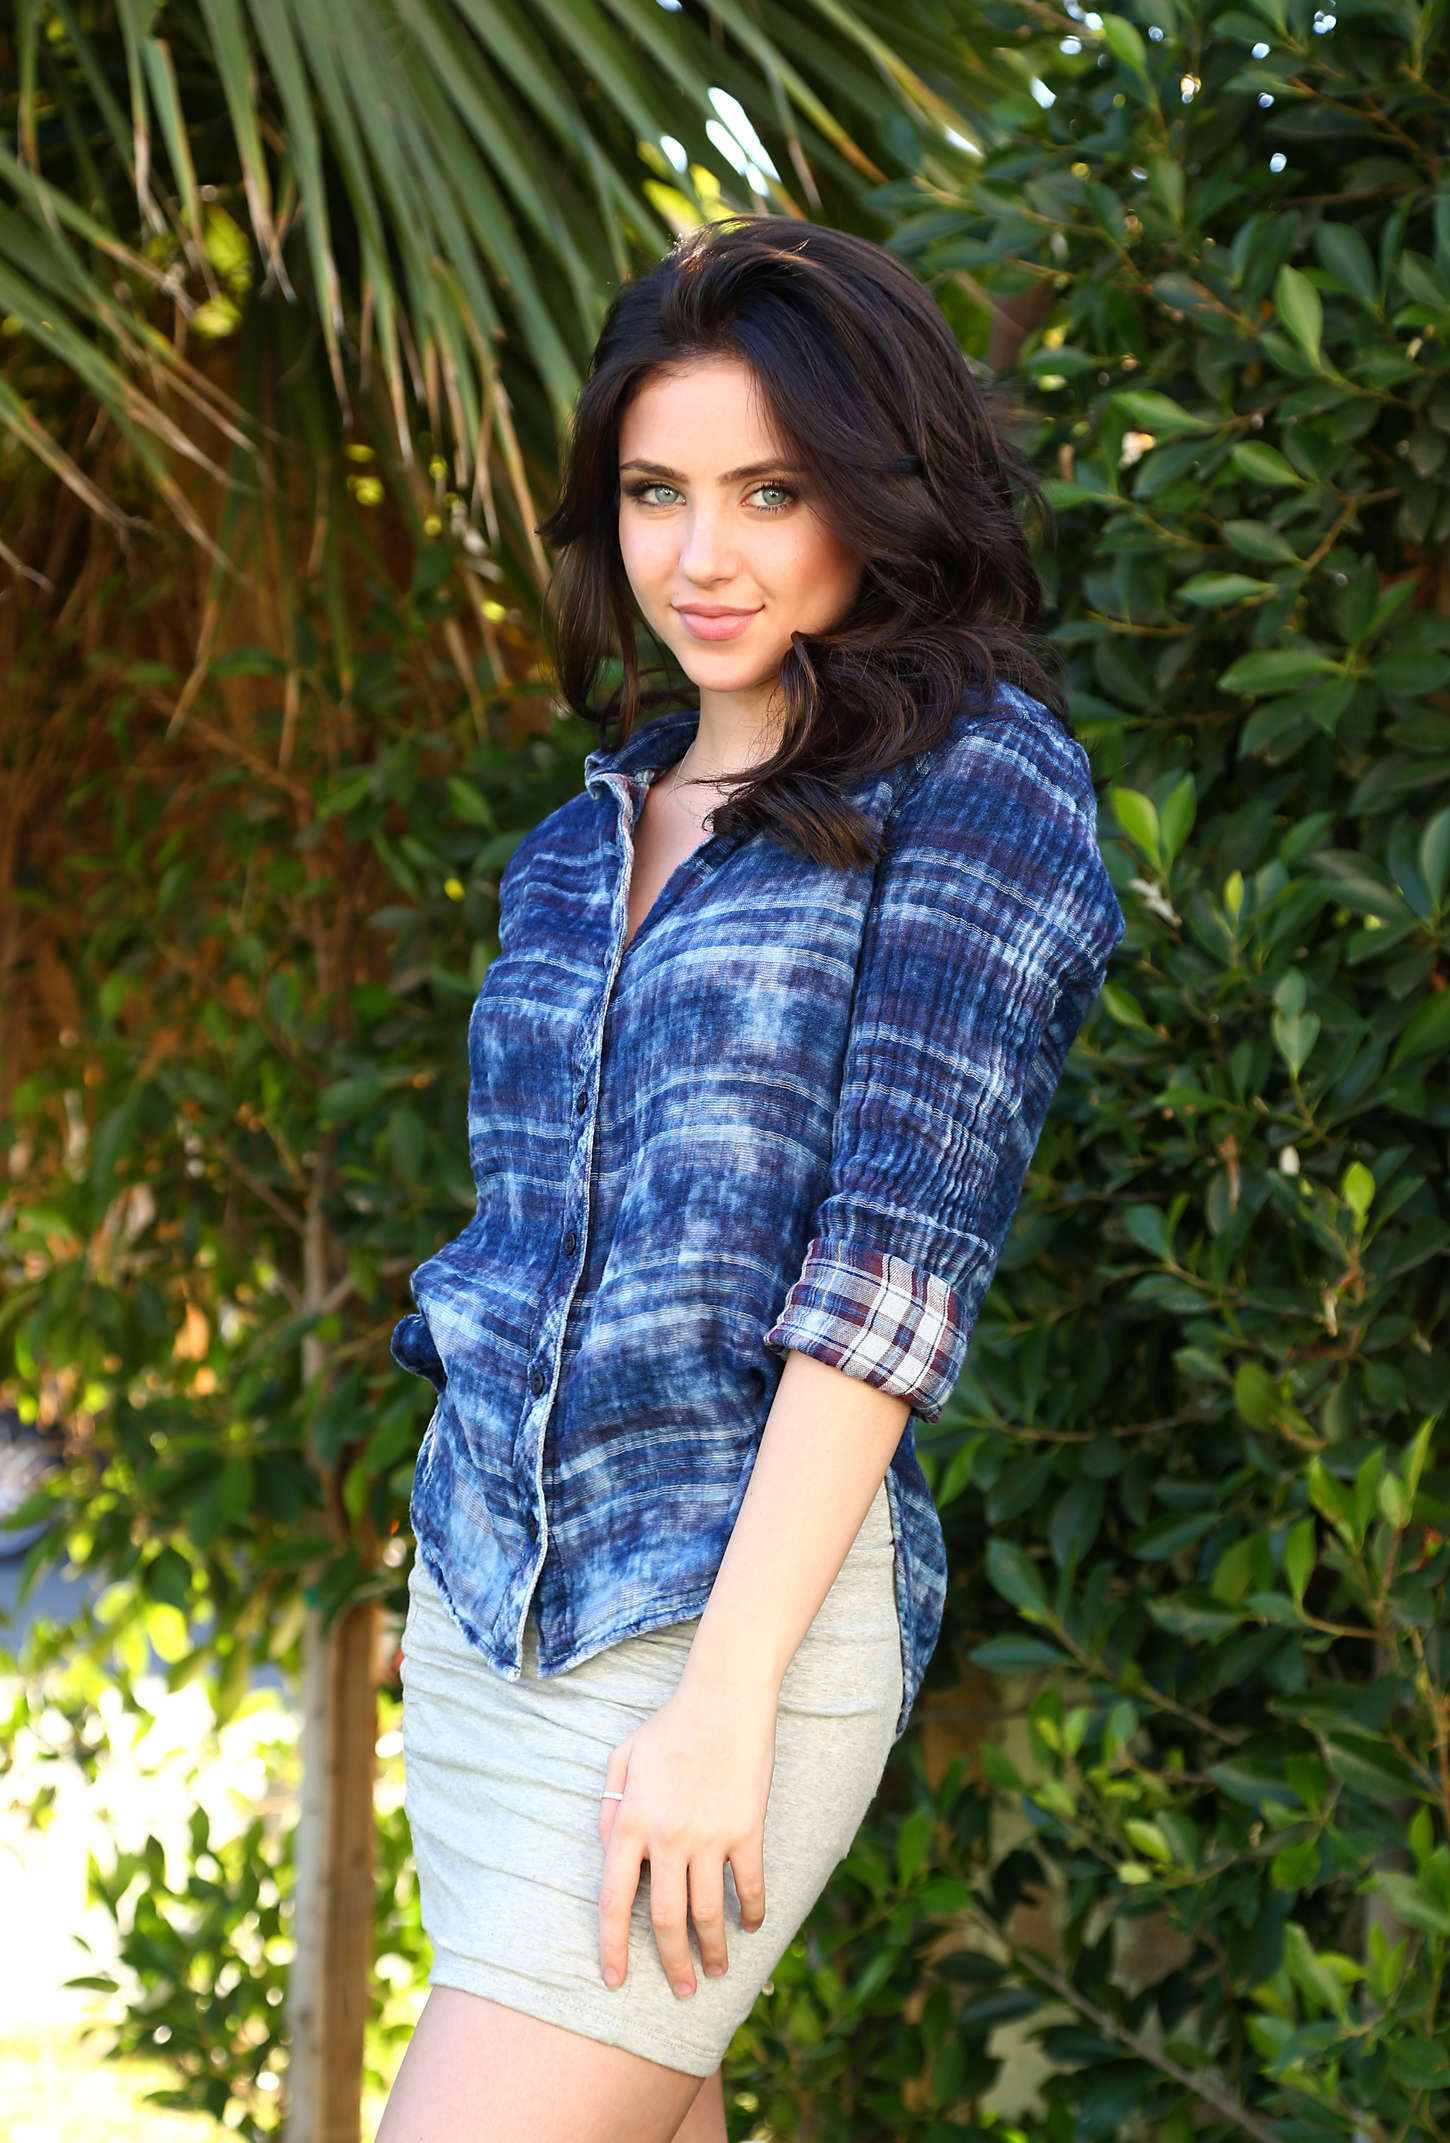 Ryan Newman Photoshoot, Los Angeles - December 2014